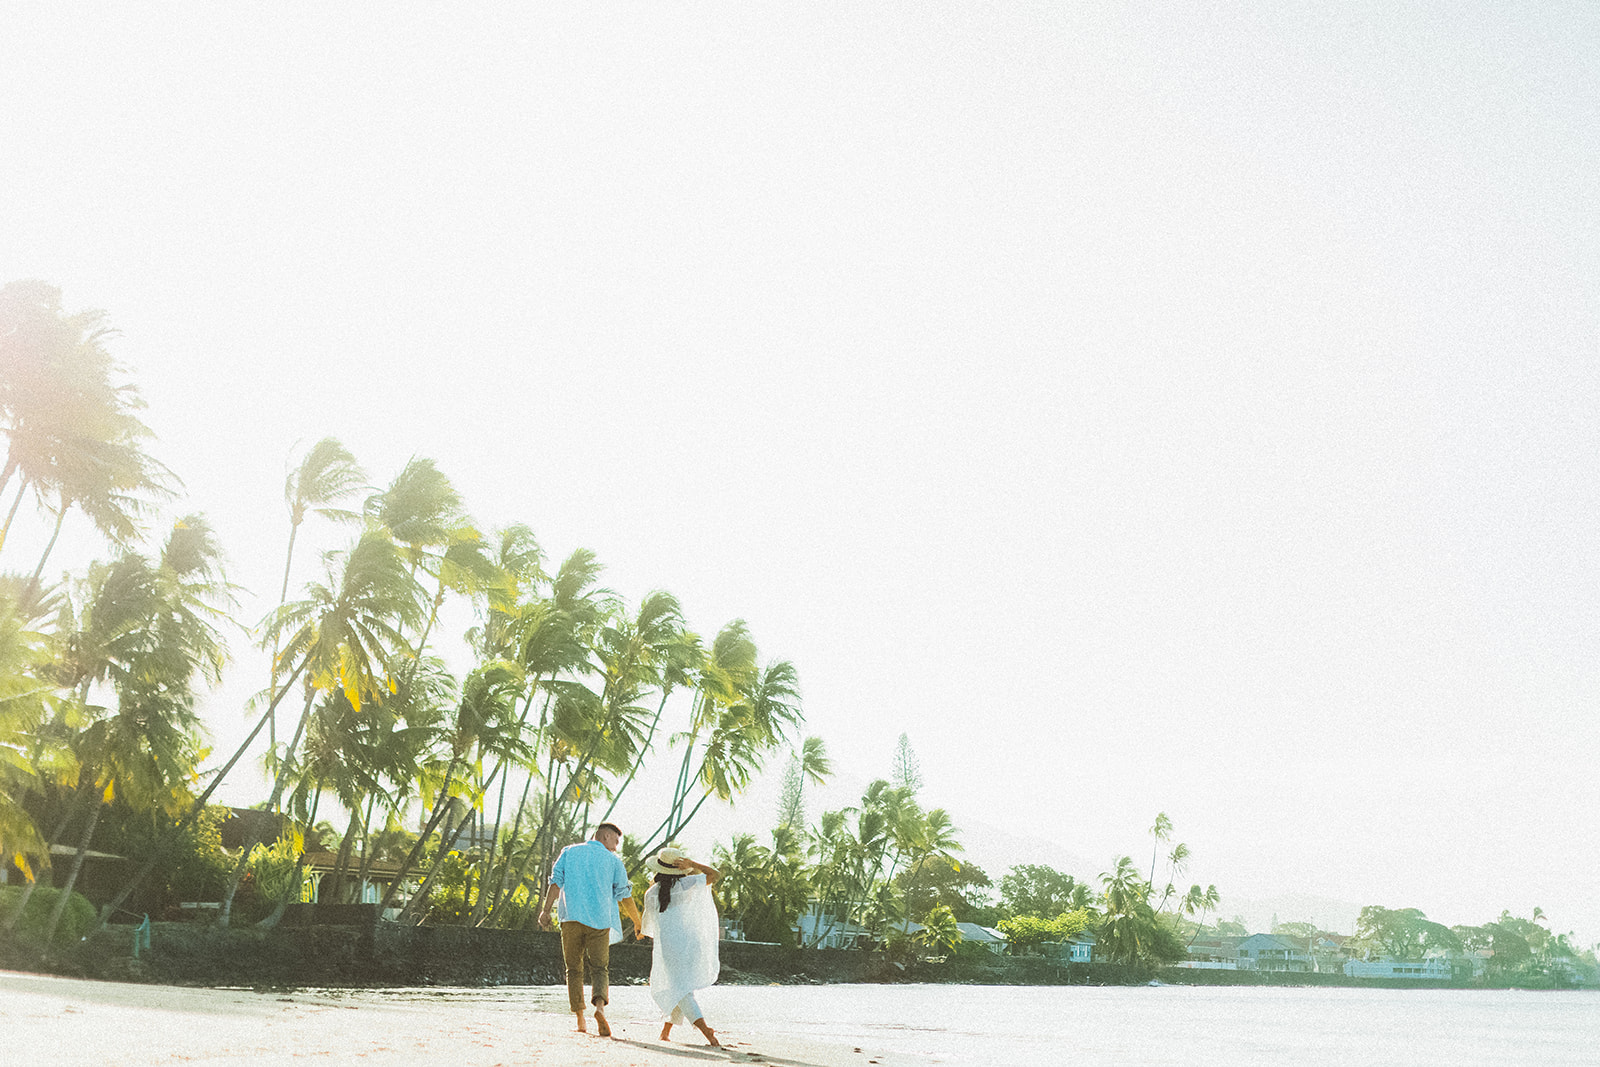 maui beach engagement session305.jpg